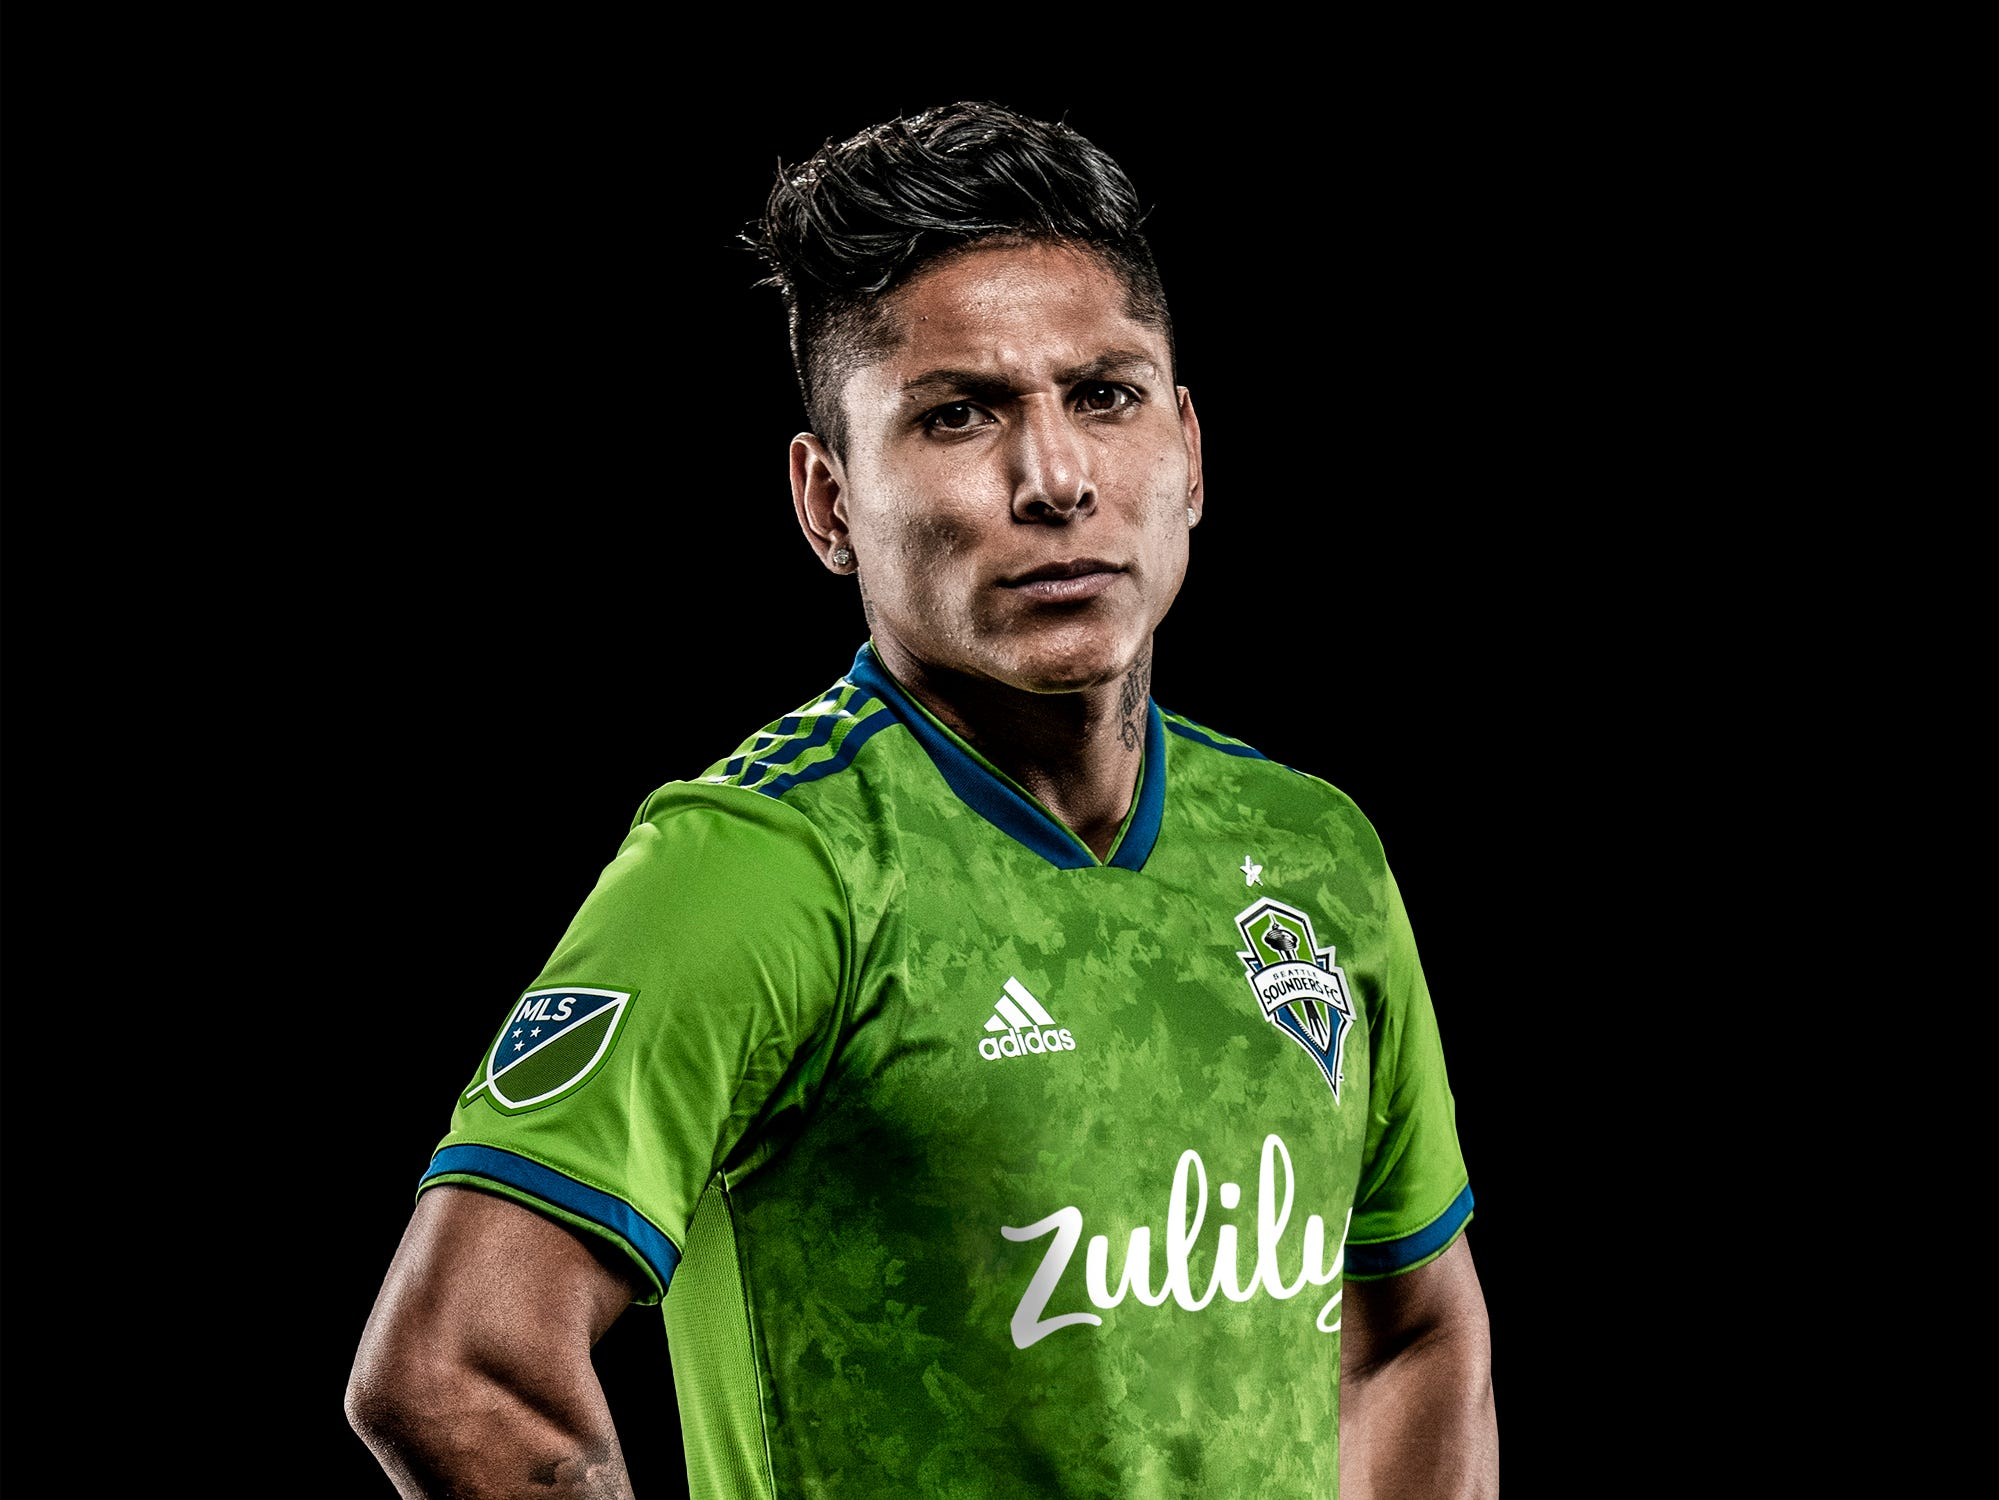 Xbox no longer marks the spot for Sounders FC